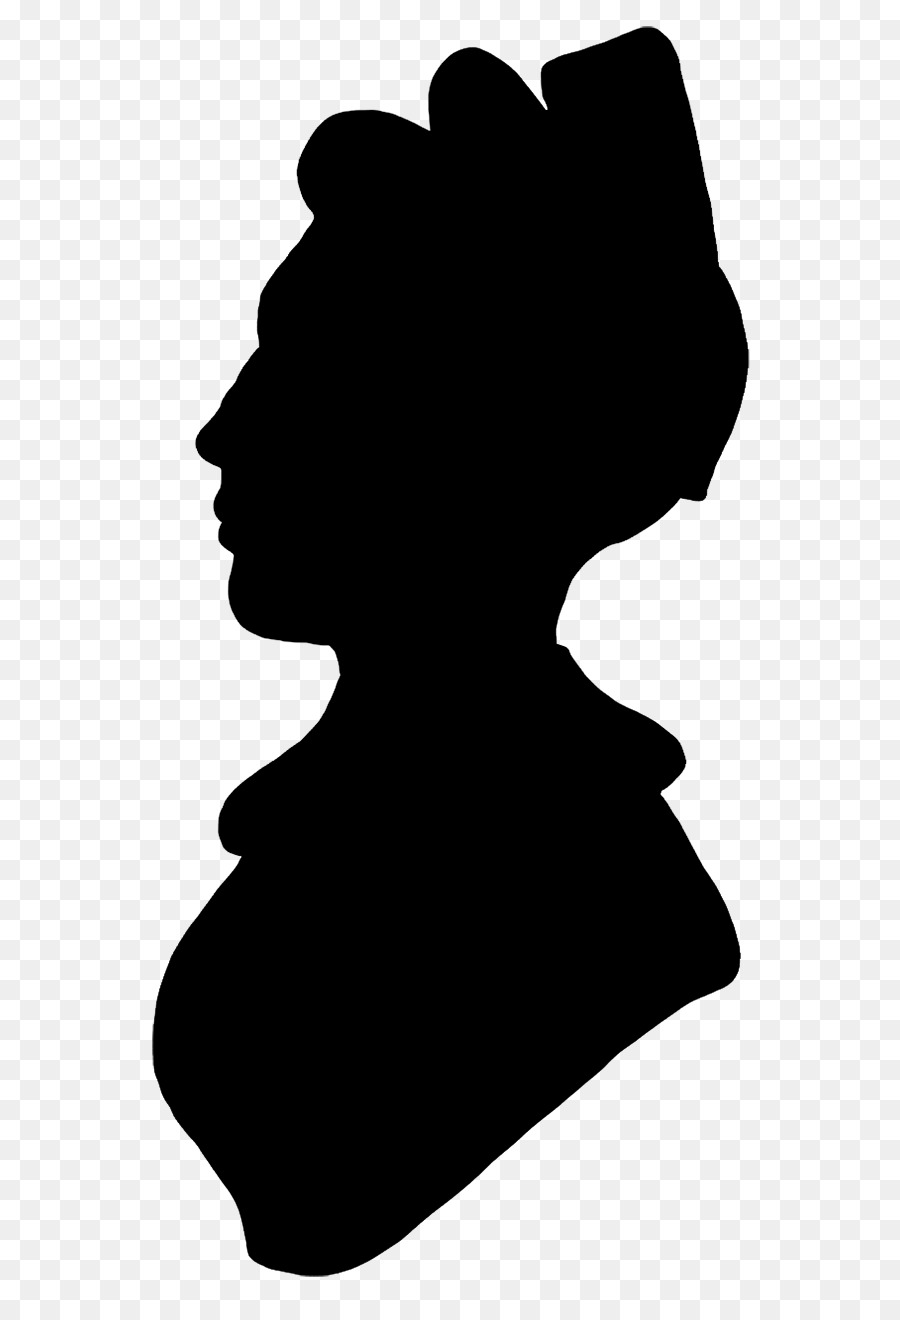 900x1320 Woman With A Hat Silhouette Female Clip Art